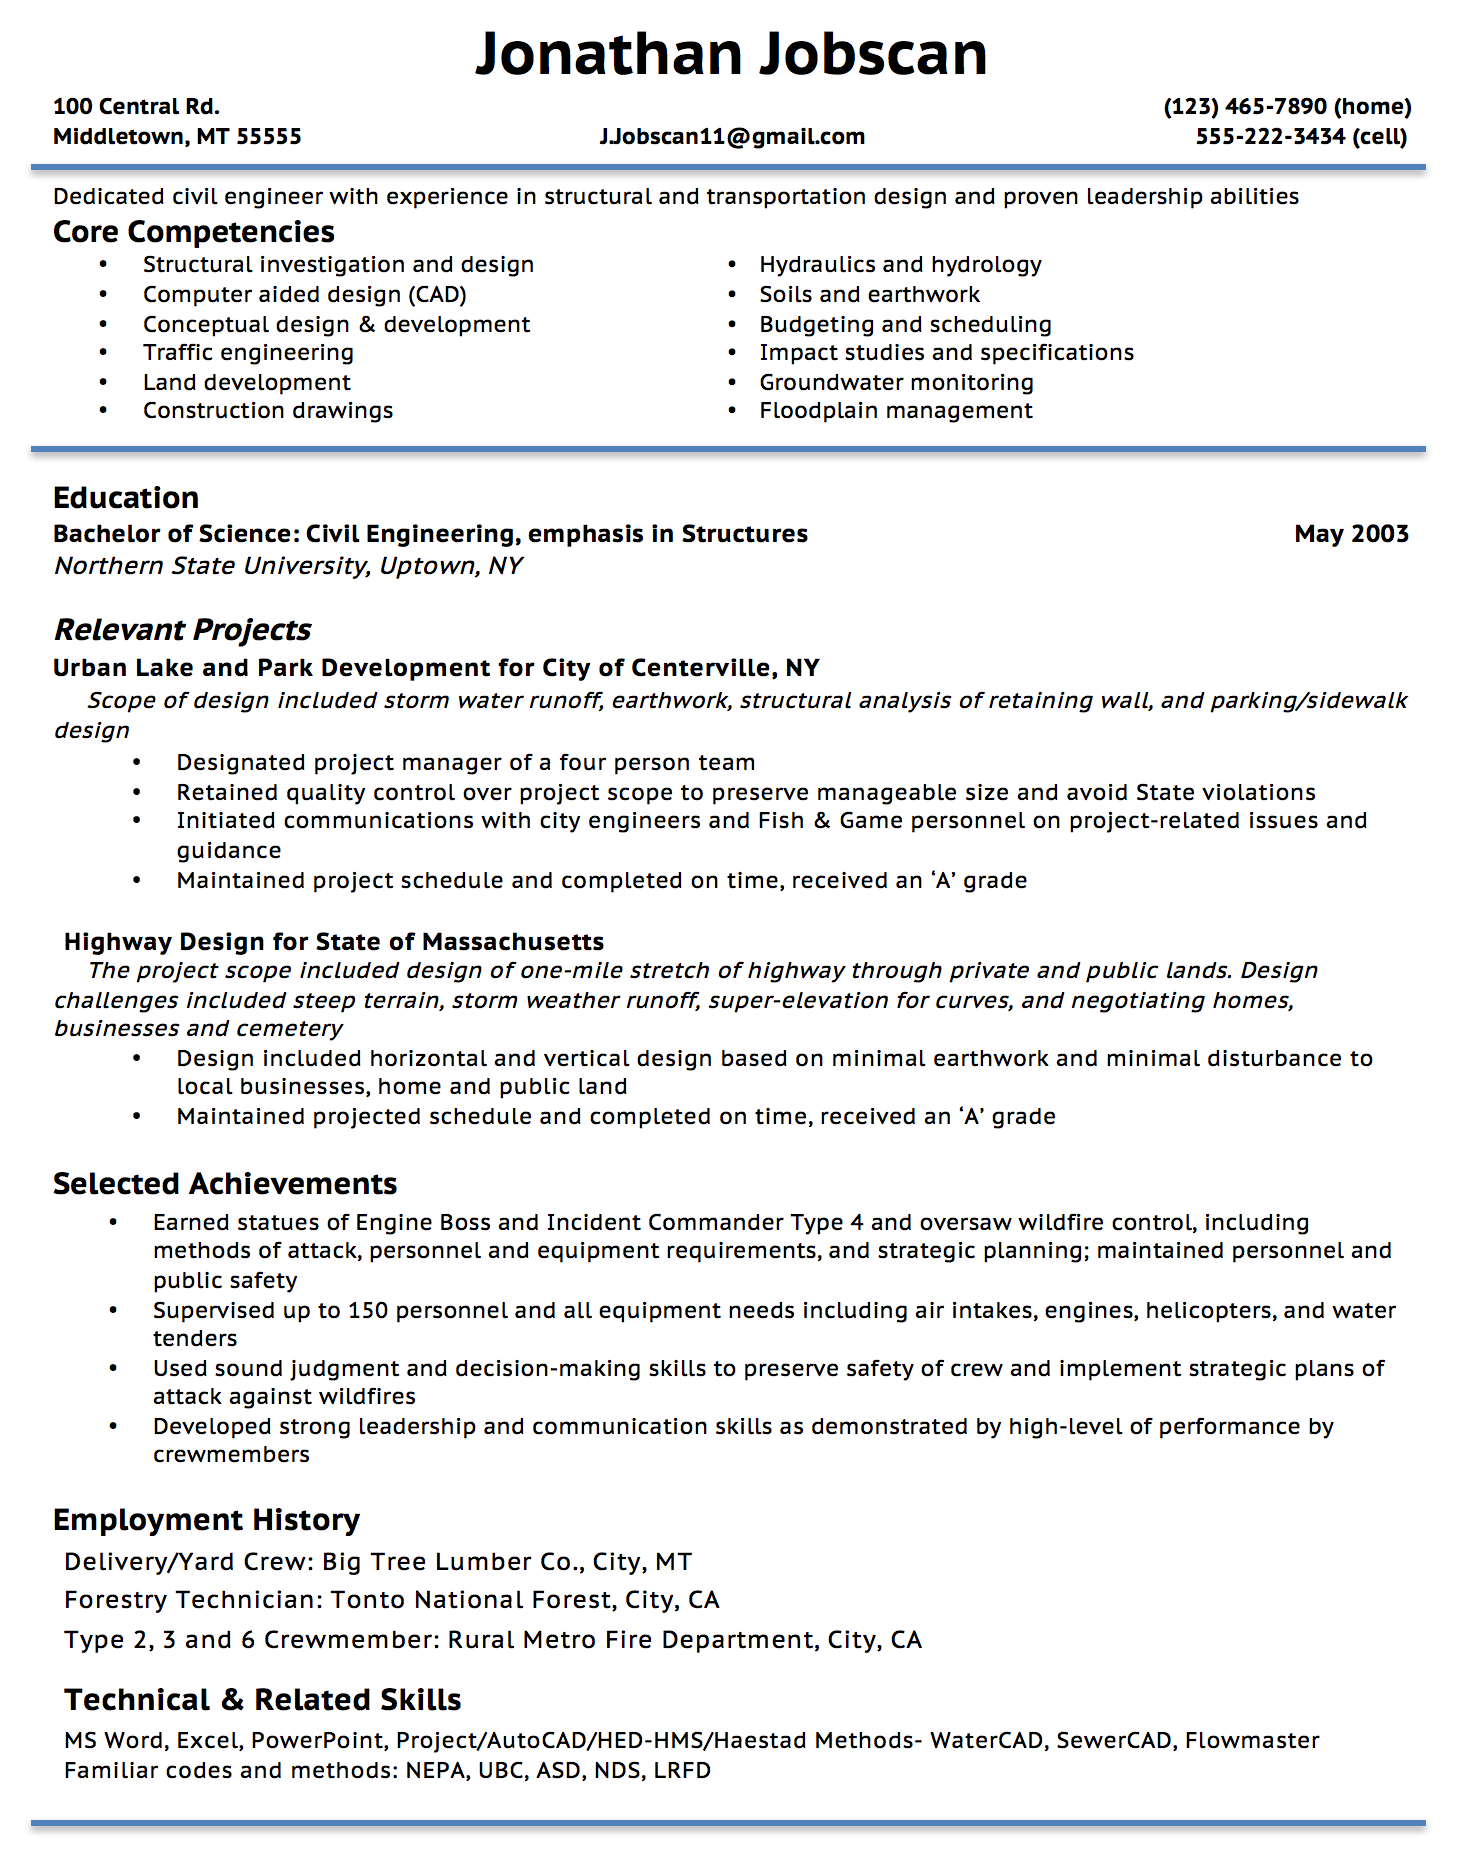 Picnictoimpeachus  Surprising Resume Writing Guide  Jobscan With Hot Example Of A Functional Resume Format With Amazing Best Resume Tips Also Systems Administrator Resume In Addition Strengths For Resume And Executive Resume Writer As Well As References For A Resume Additionally Resume Achievements From Jobscanco With Picnictoimpeachus  Hot Resume Writing Guide  Jobscan With Amazing Example Of A Functional Resume Format And Surprising Best Resume Tips Also Systems Administrator Resume In Addition Strengths For Resume From Jobscanco